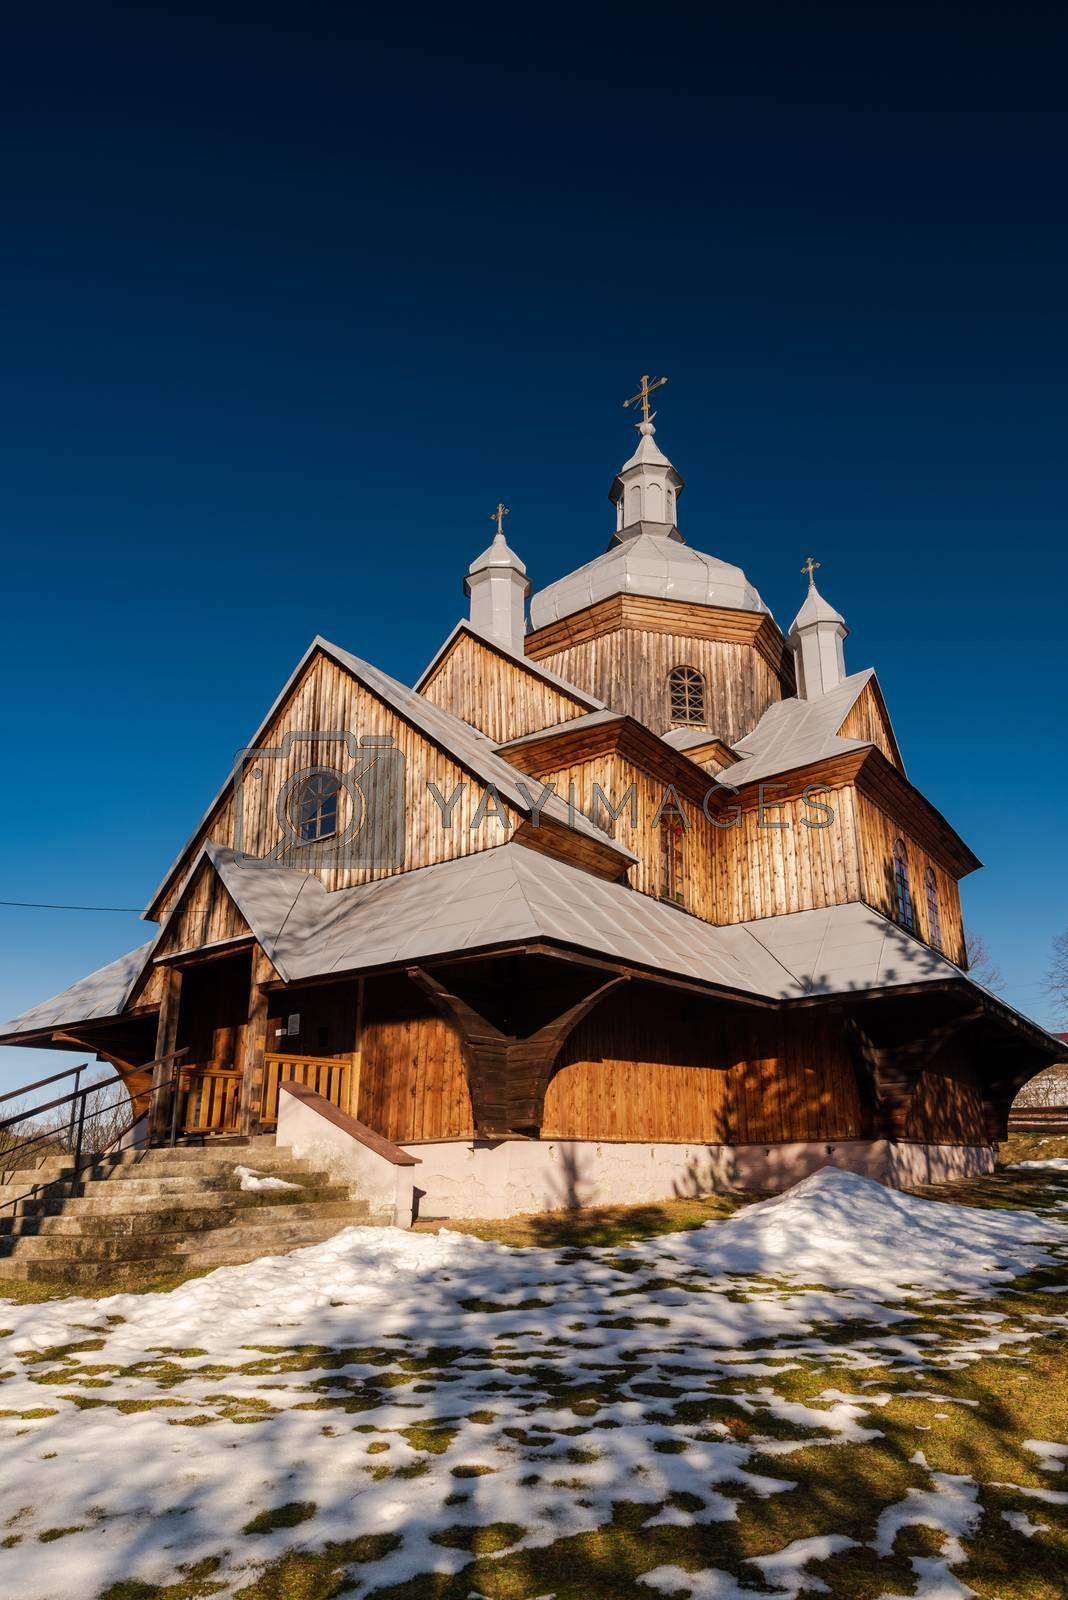 Wooden Orthodox Church in Hoszow. Carpathian Mountains and Bieszczady Architecture in Winter.